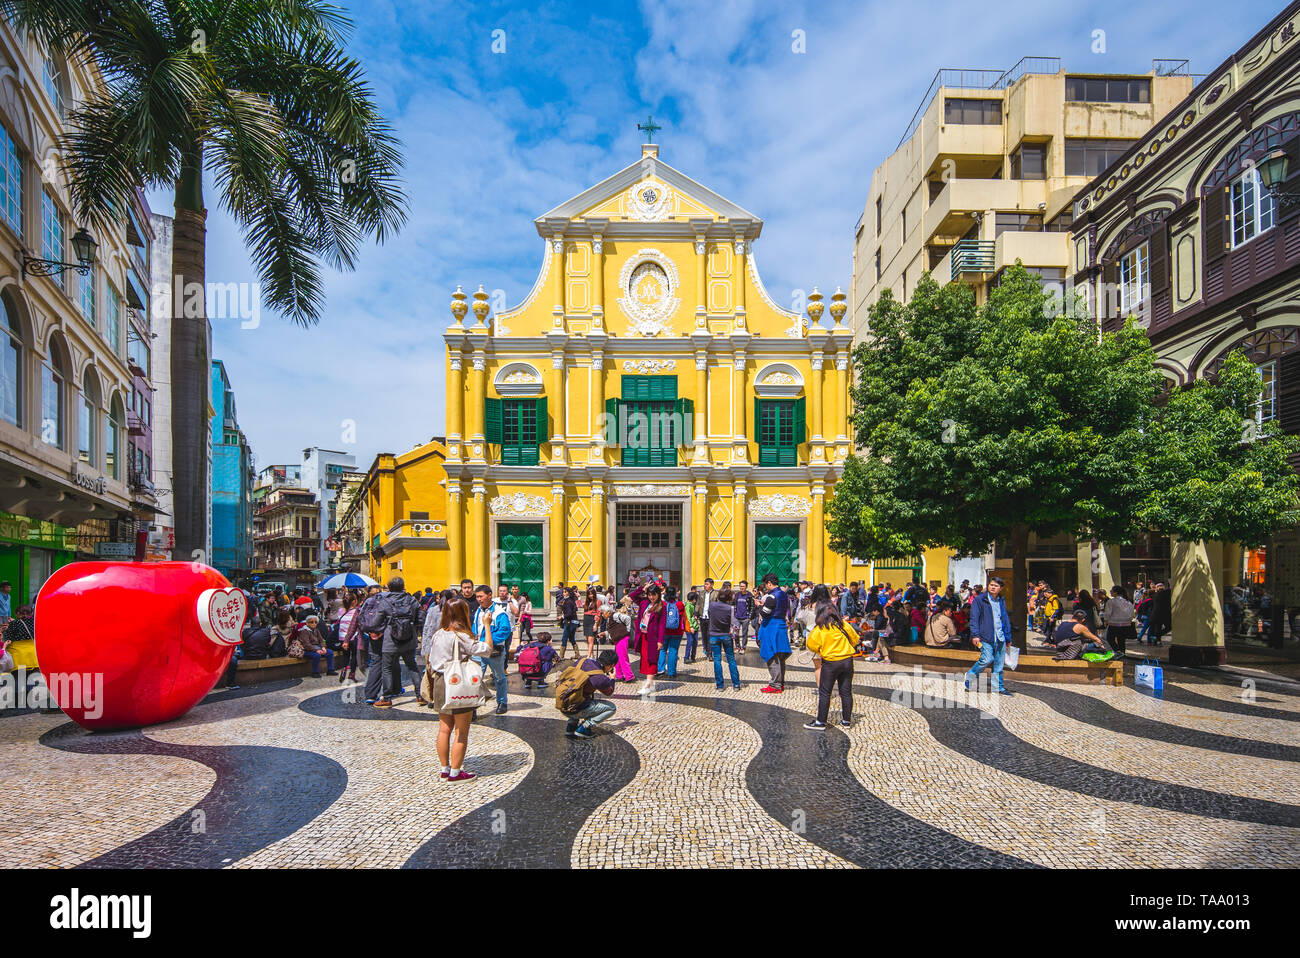 Macau, China - February 27, 2017: St. Dominic's Church,  listed as one of the 29 sites that form the Historic Centre of Macau, a UNESCO World Heritage - Stock Image